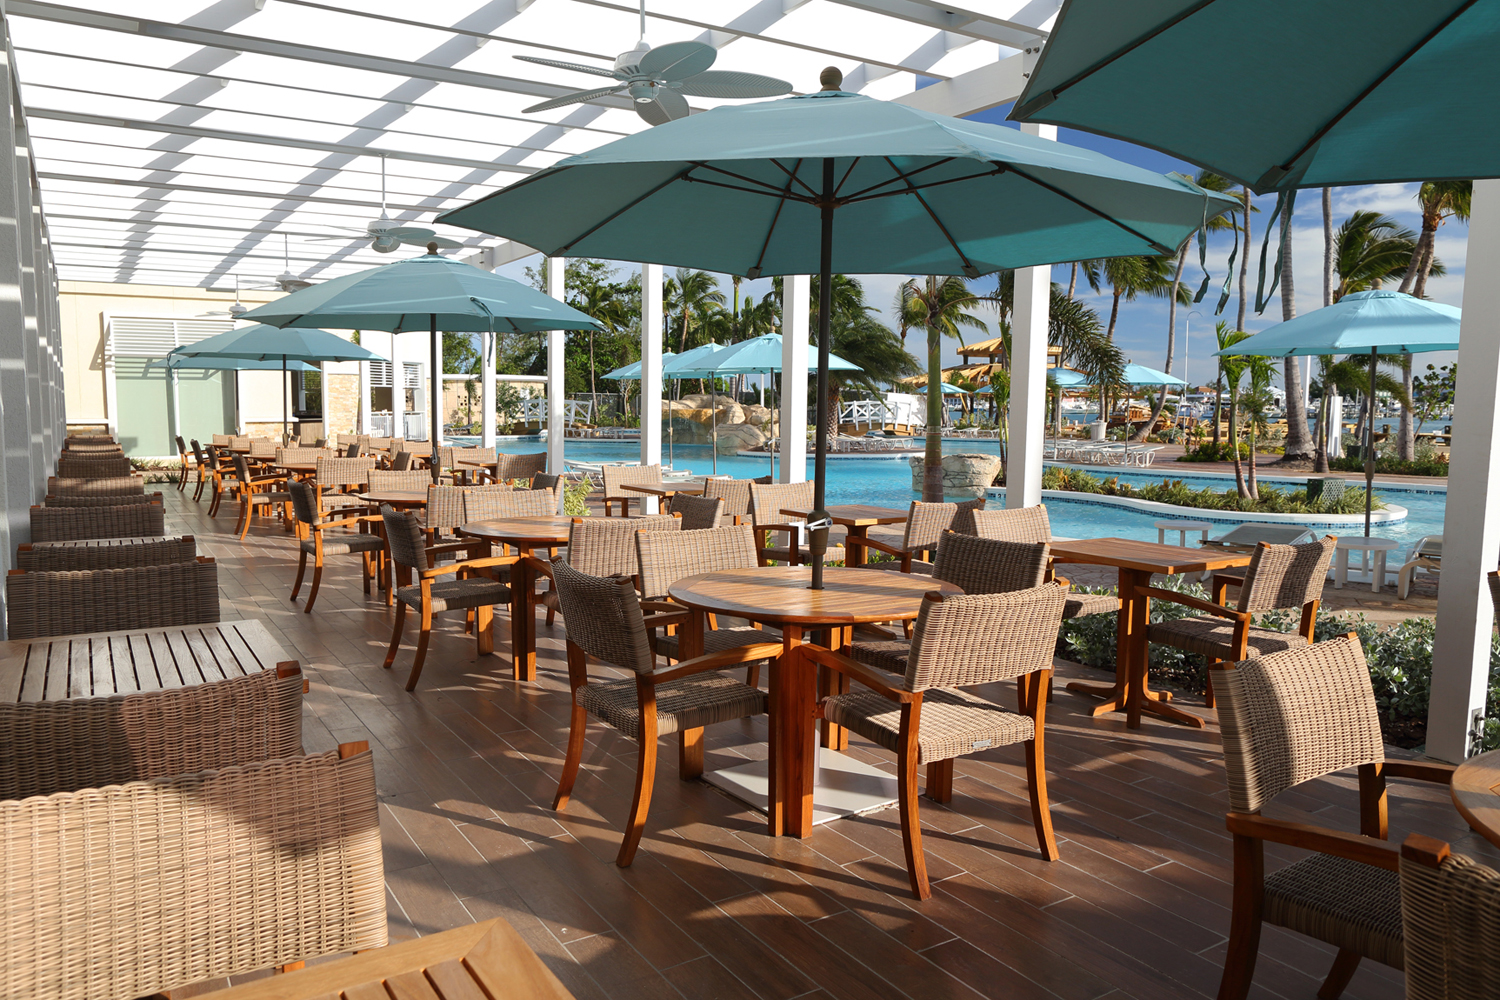 The Verandah Terrace at Warwick Paradise Island Bahamas.